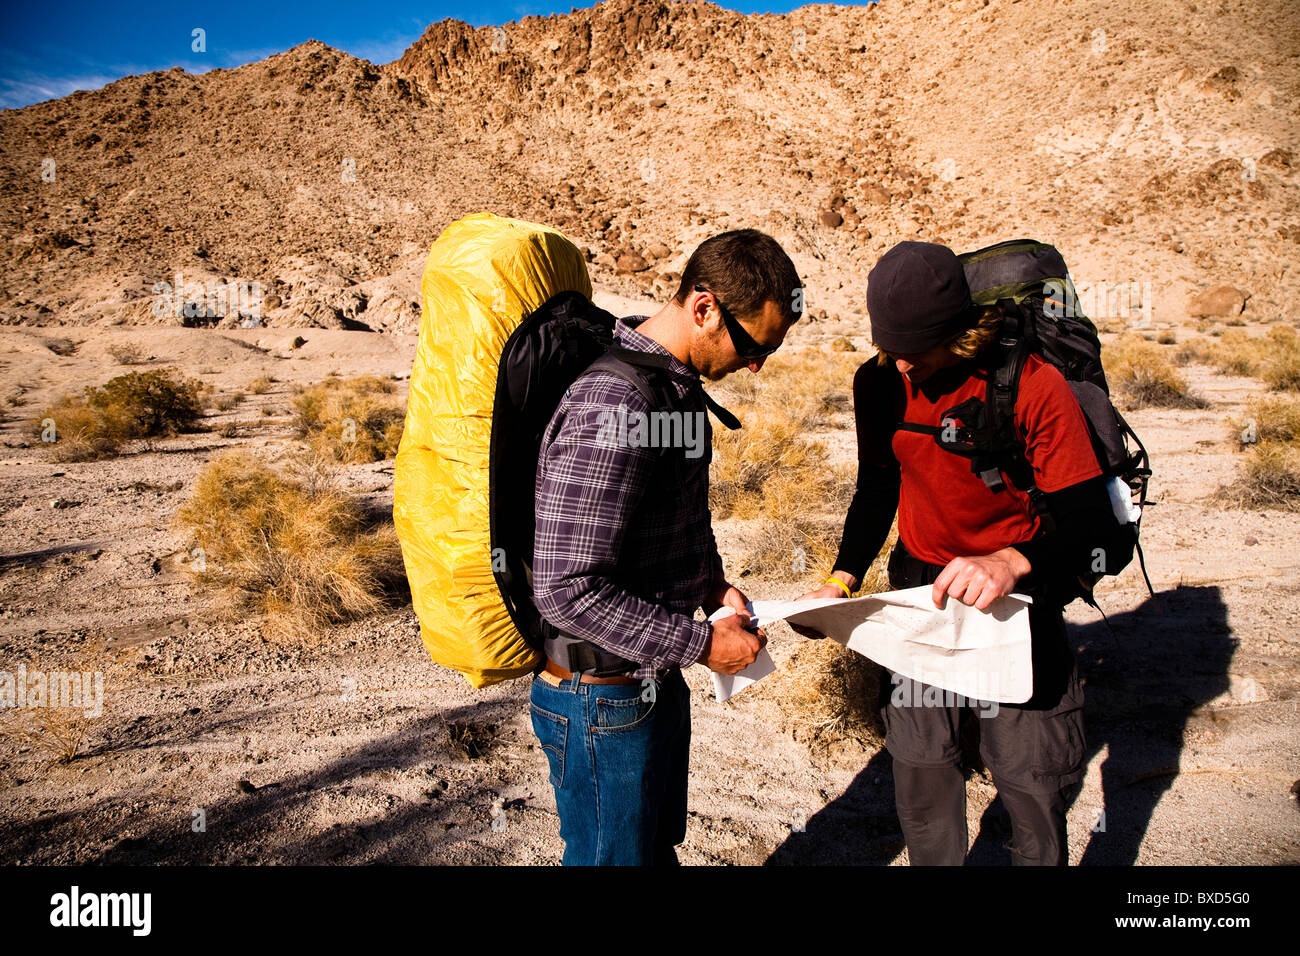 Two male hikers look over a map while backpacking through the Confidence Hills in Death Valley Nation Park, California. - Stock Image